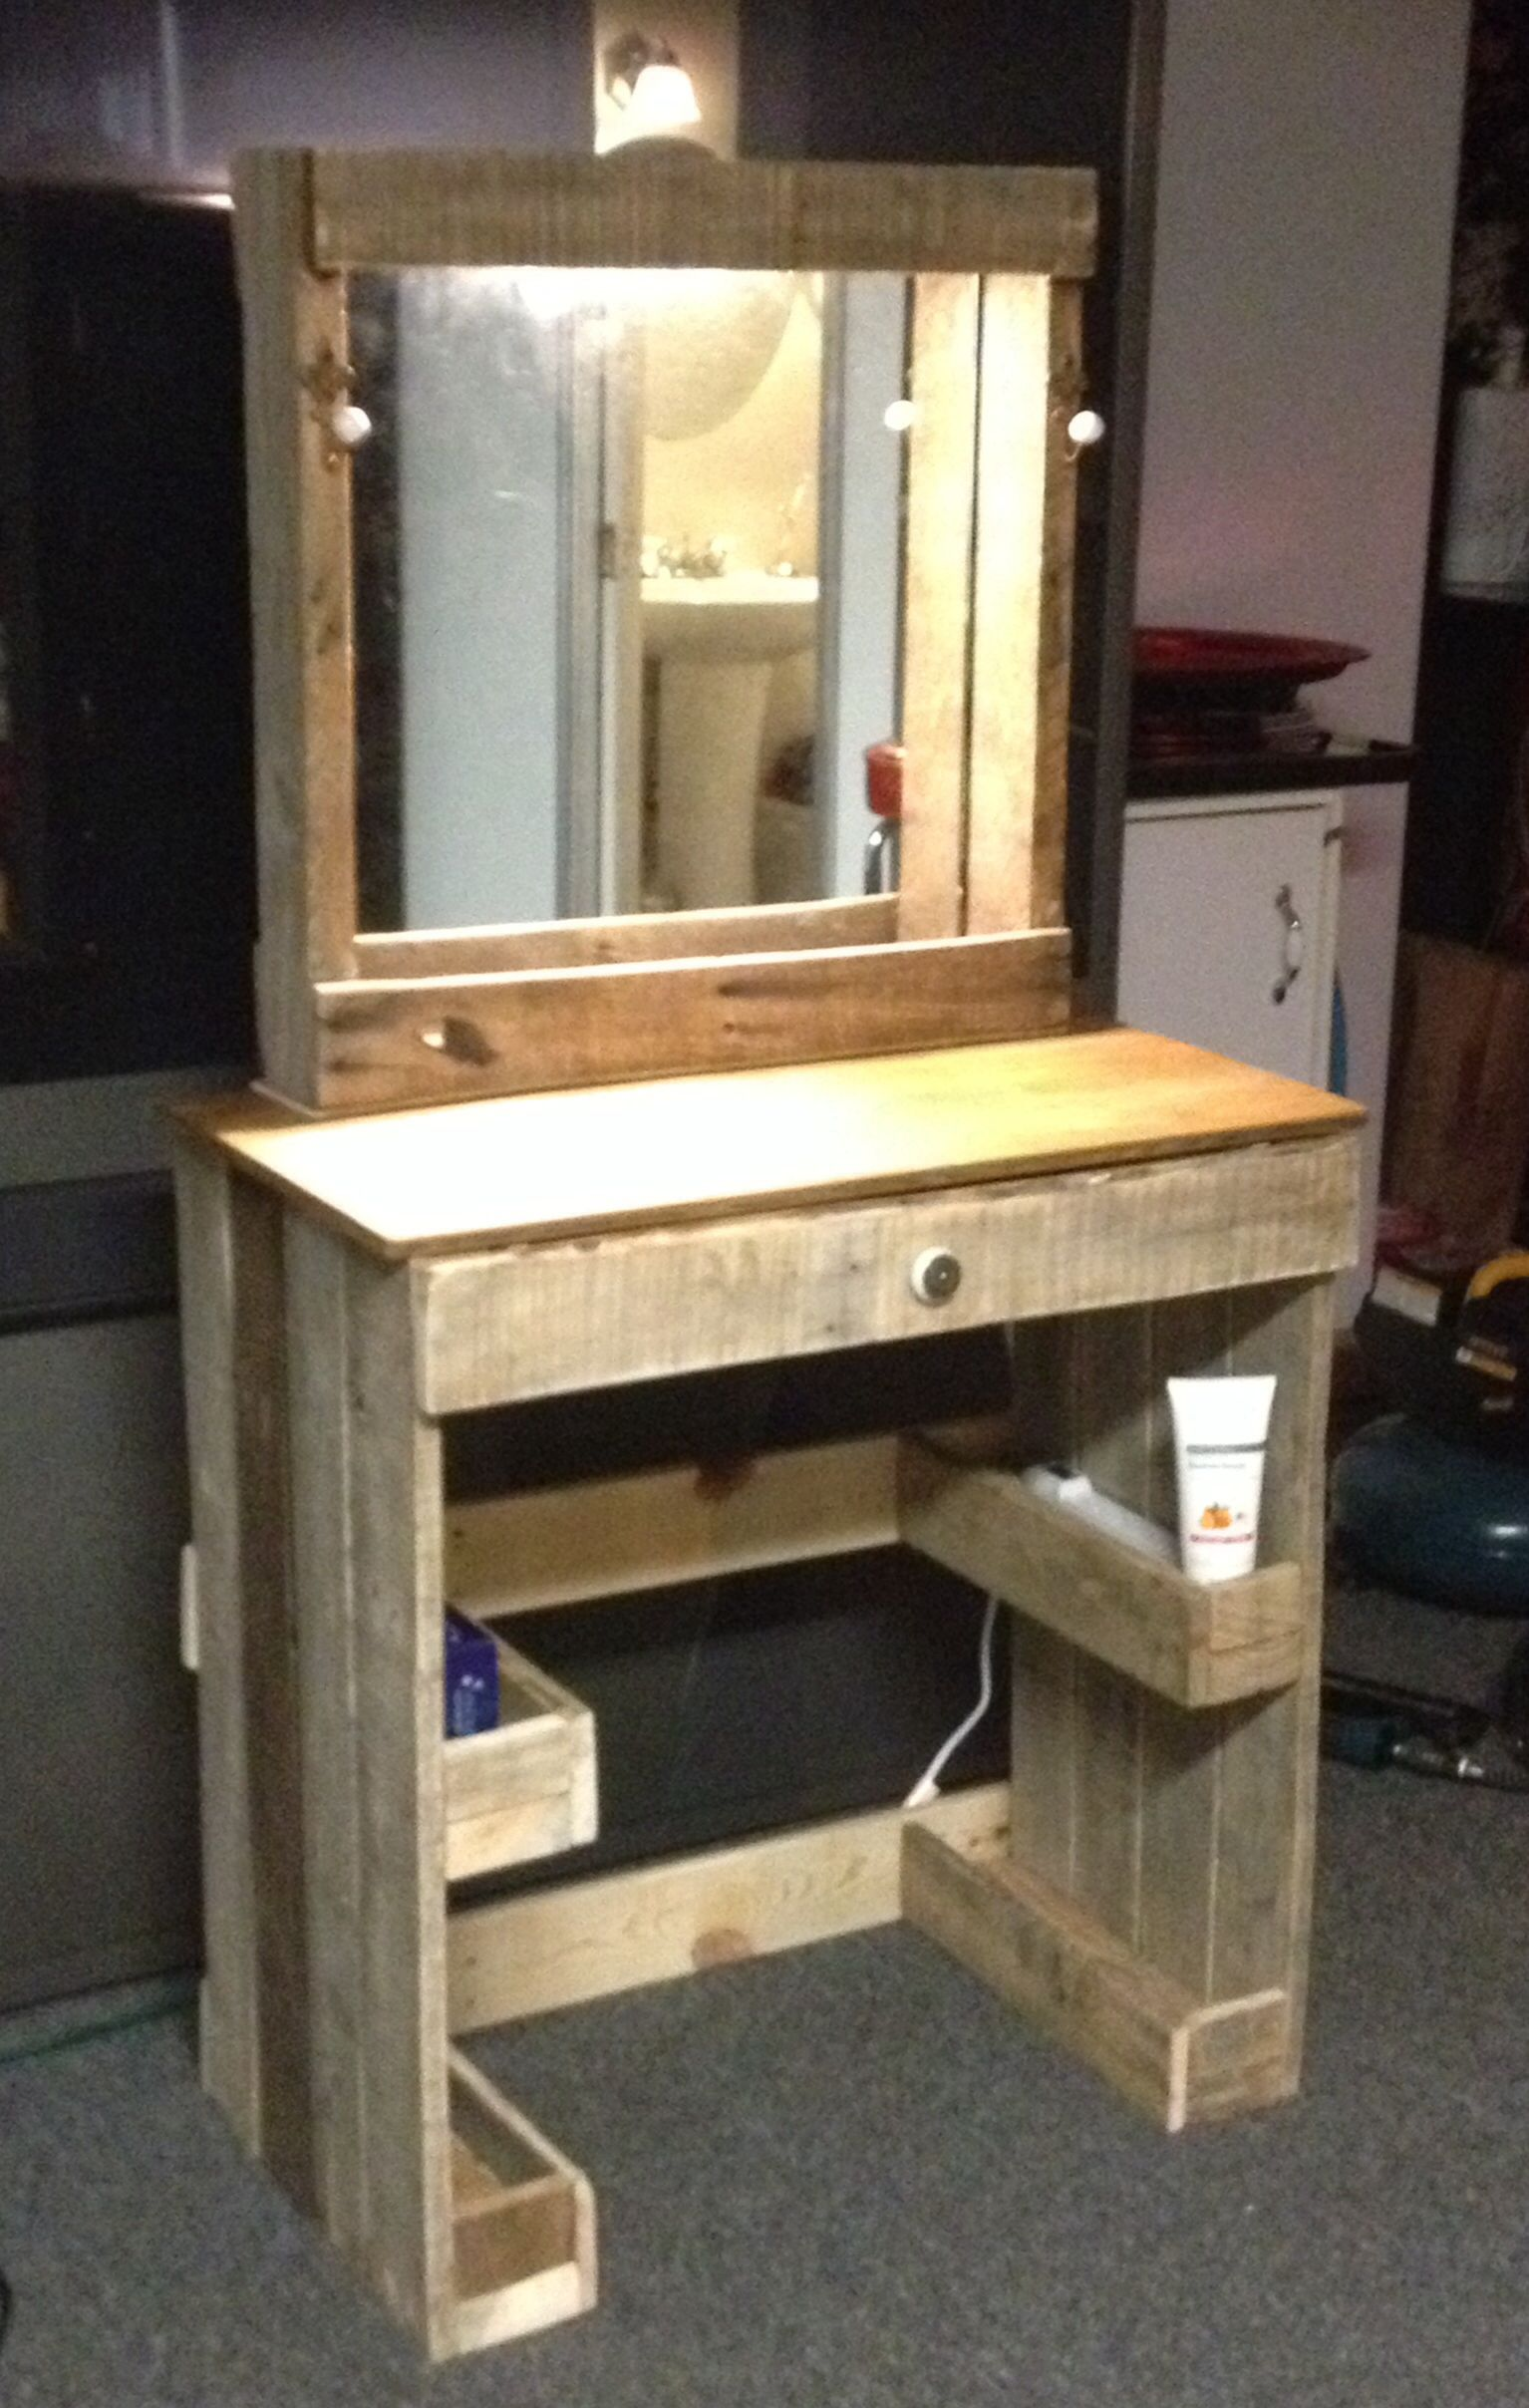 Vanity with lighted make up mirror made from reclaimed wood fun vanity with lighted make up mirror made from reclaimed wood fun project aloadofball Image collections